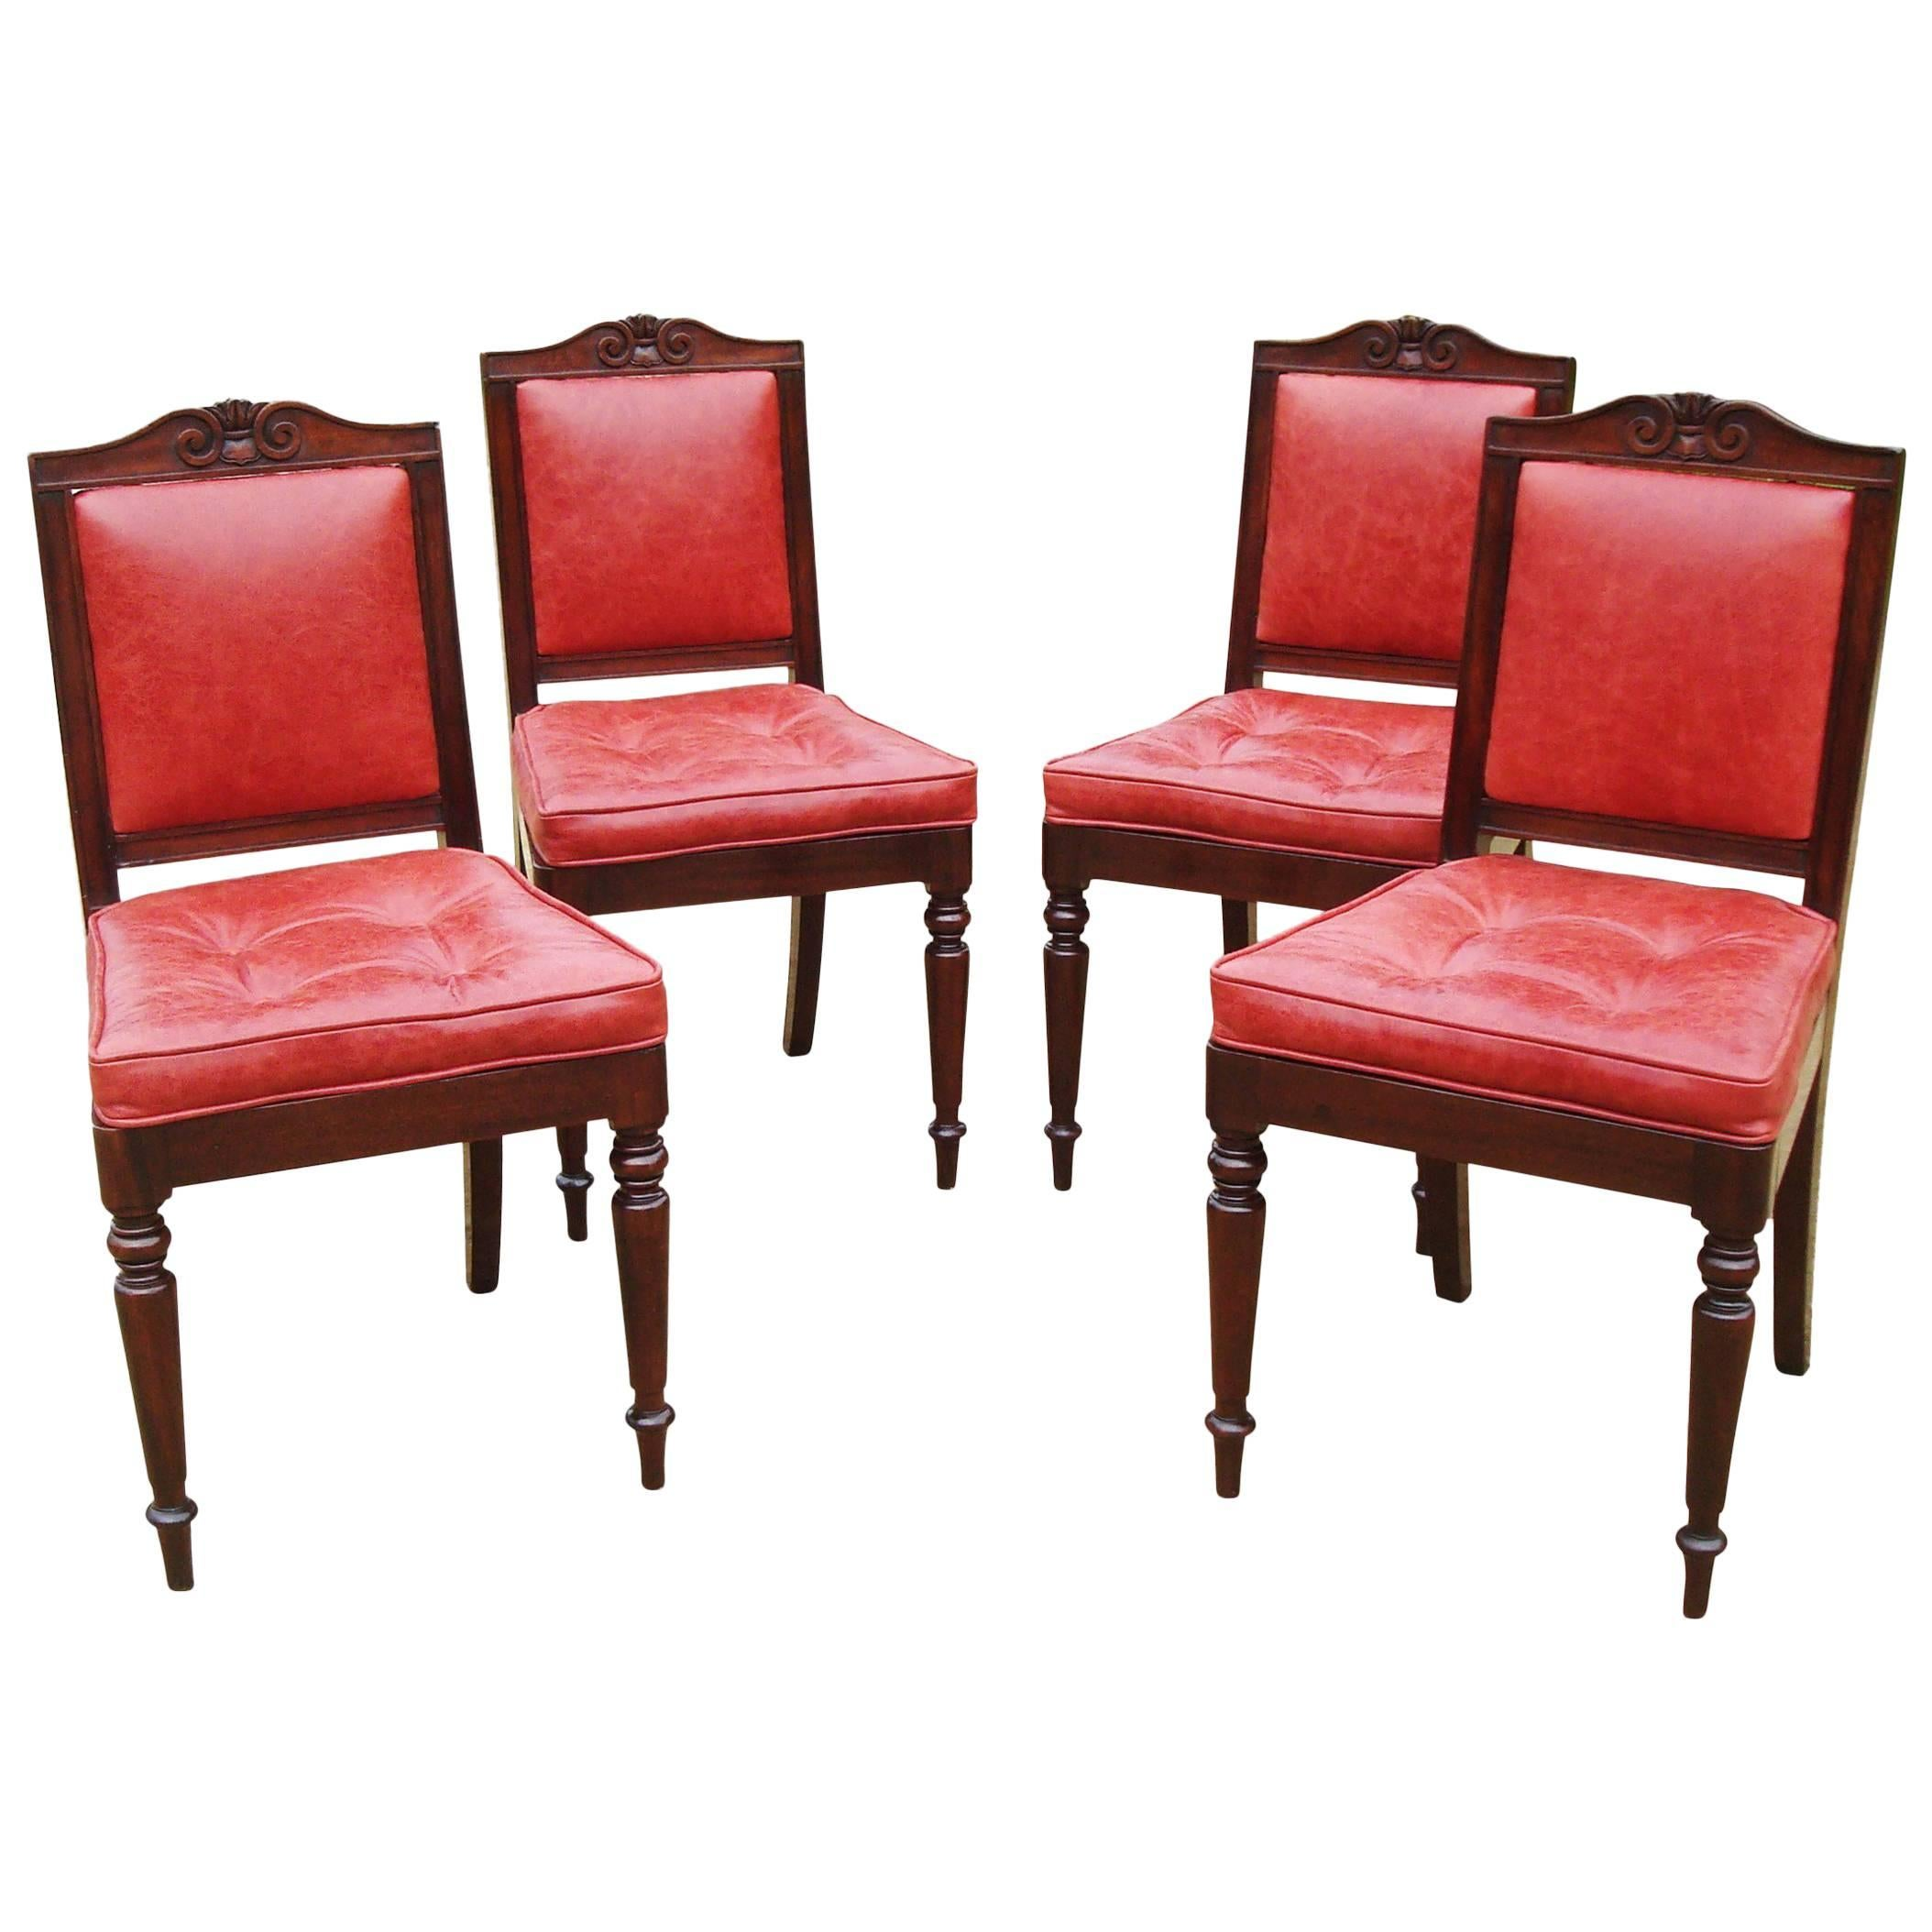 Late Regency Set Of Four Mahogany And Leather Side Chairs By Gillows